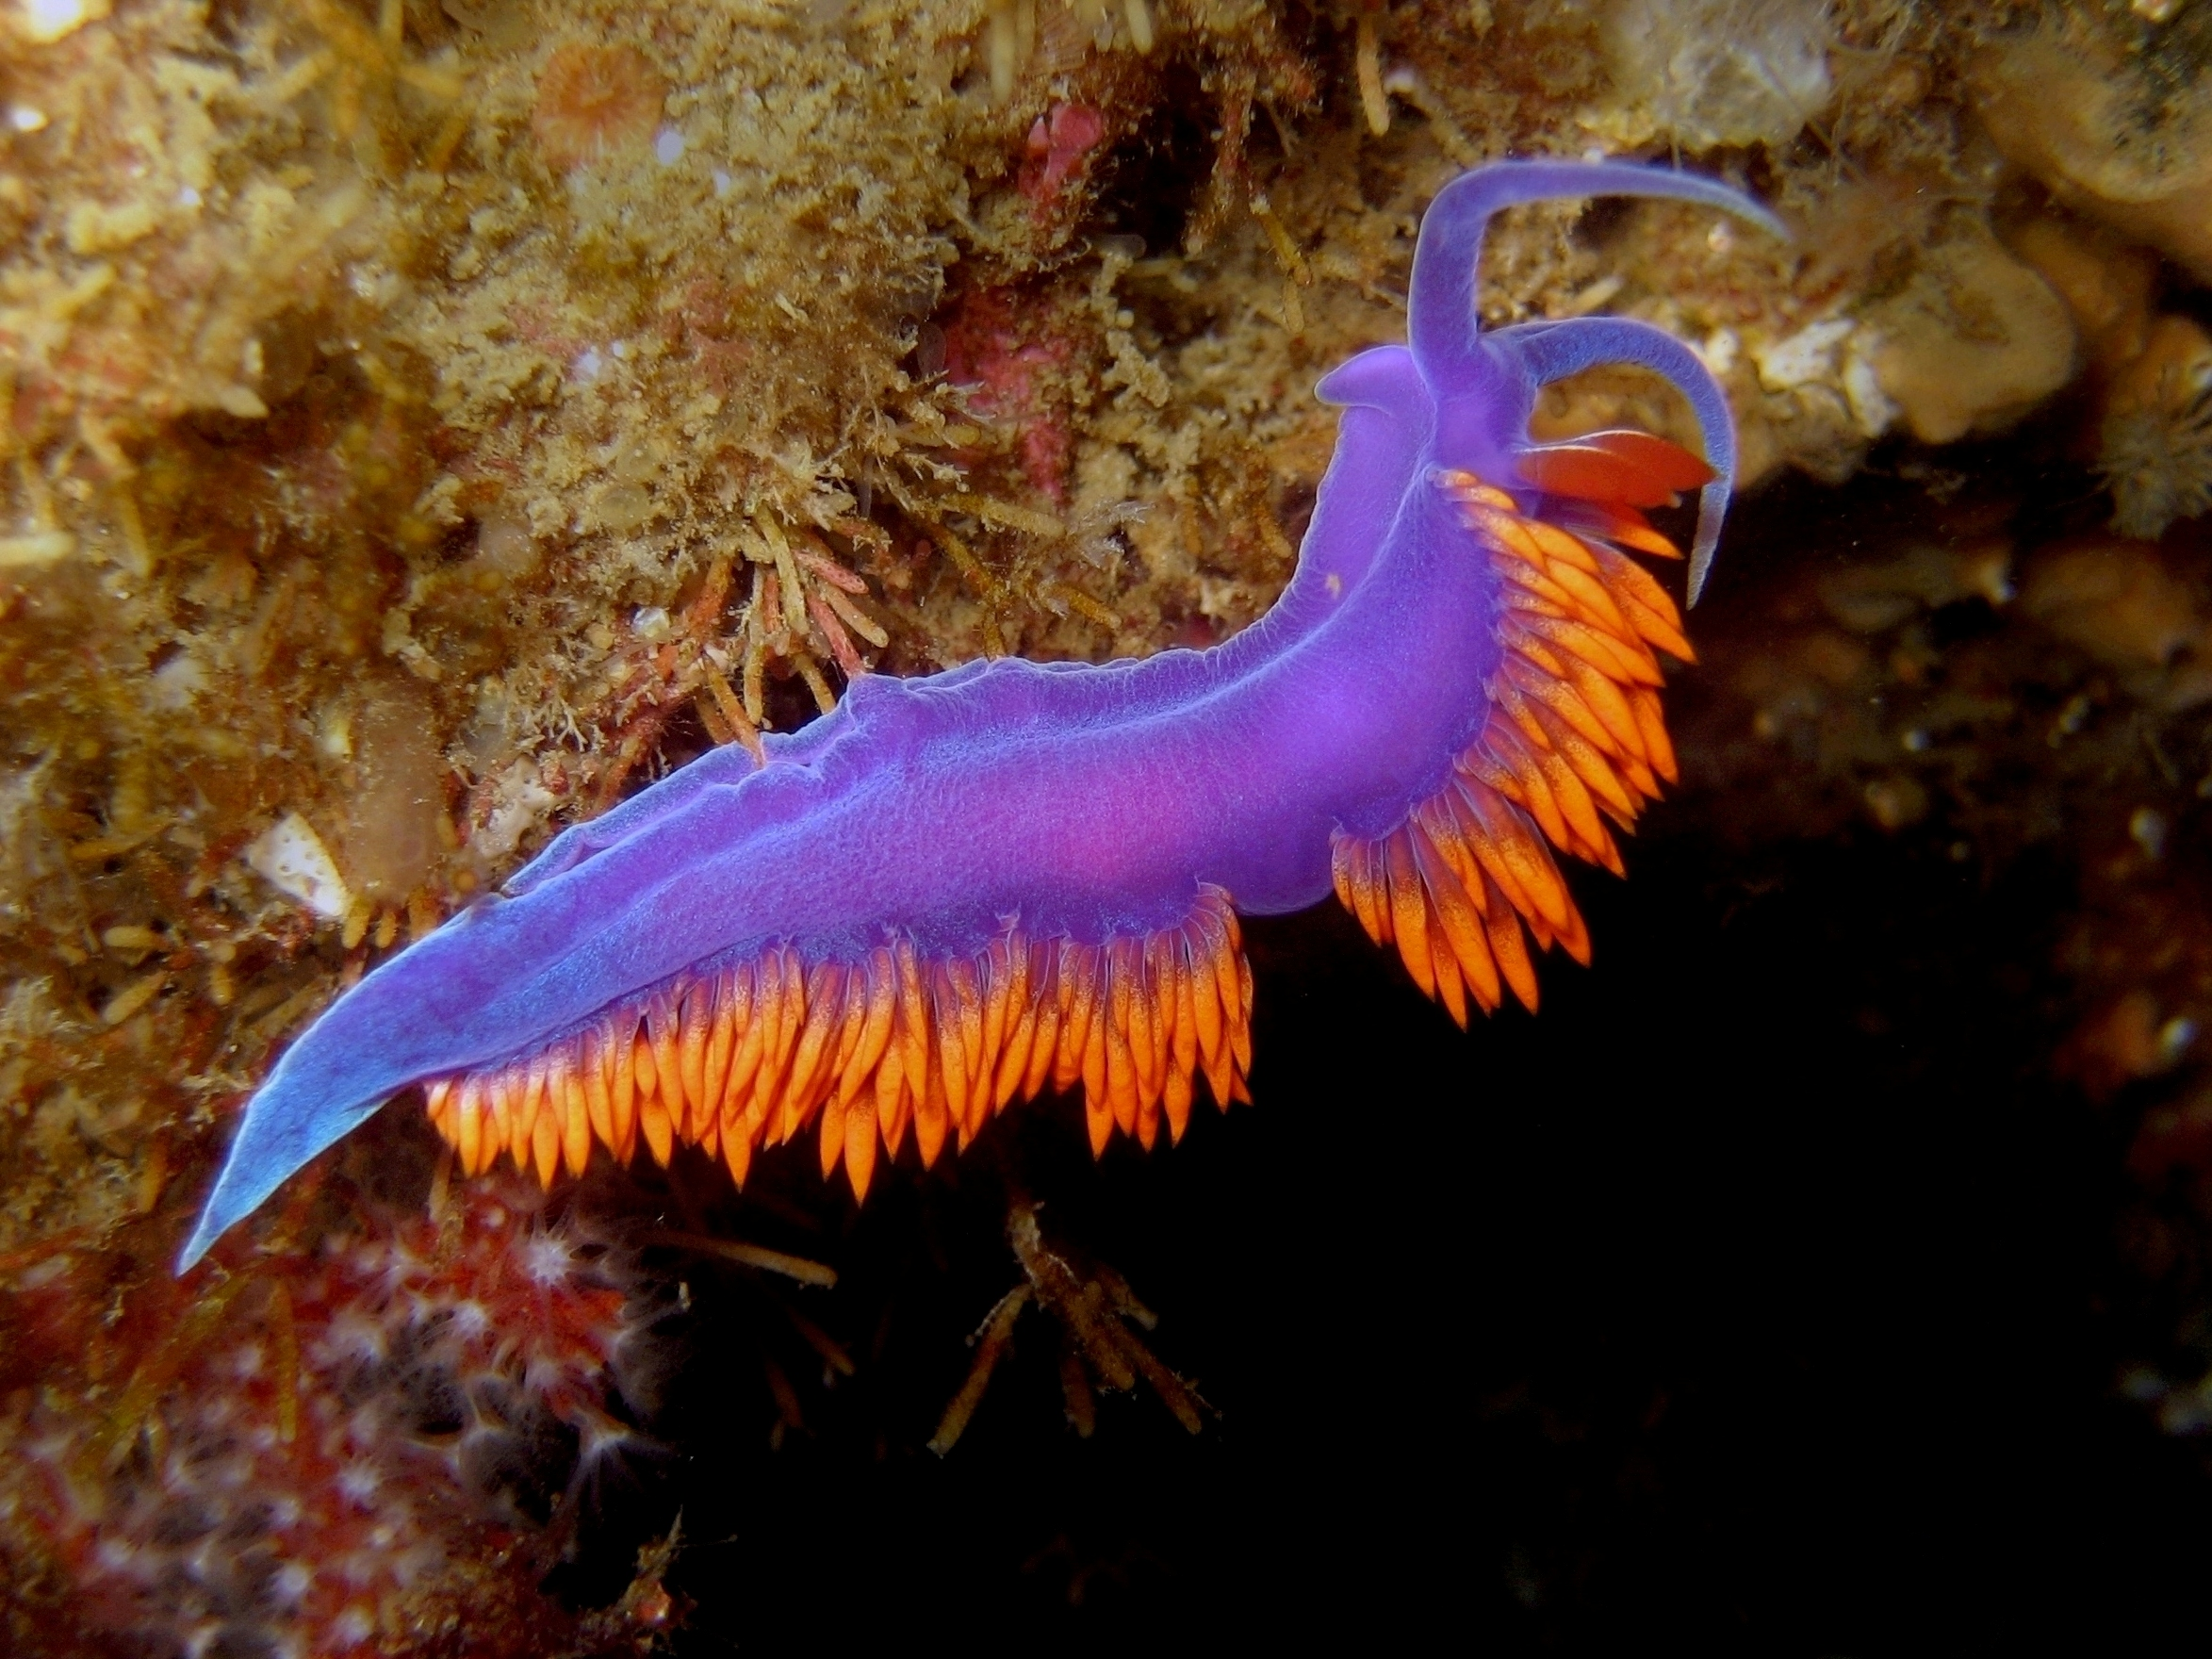 http://www.scubatube.org/m_pictures/Spanish%20Shawl%20Nudibranch.jpg